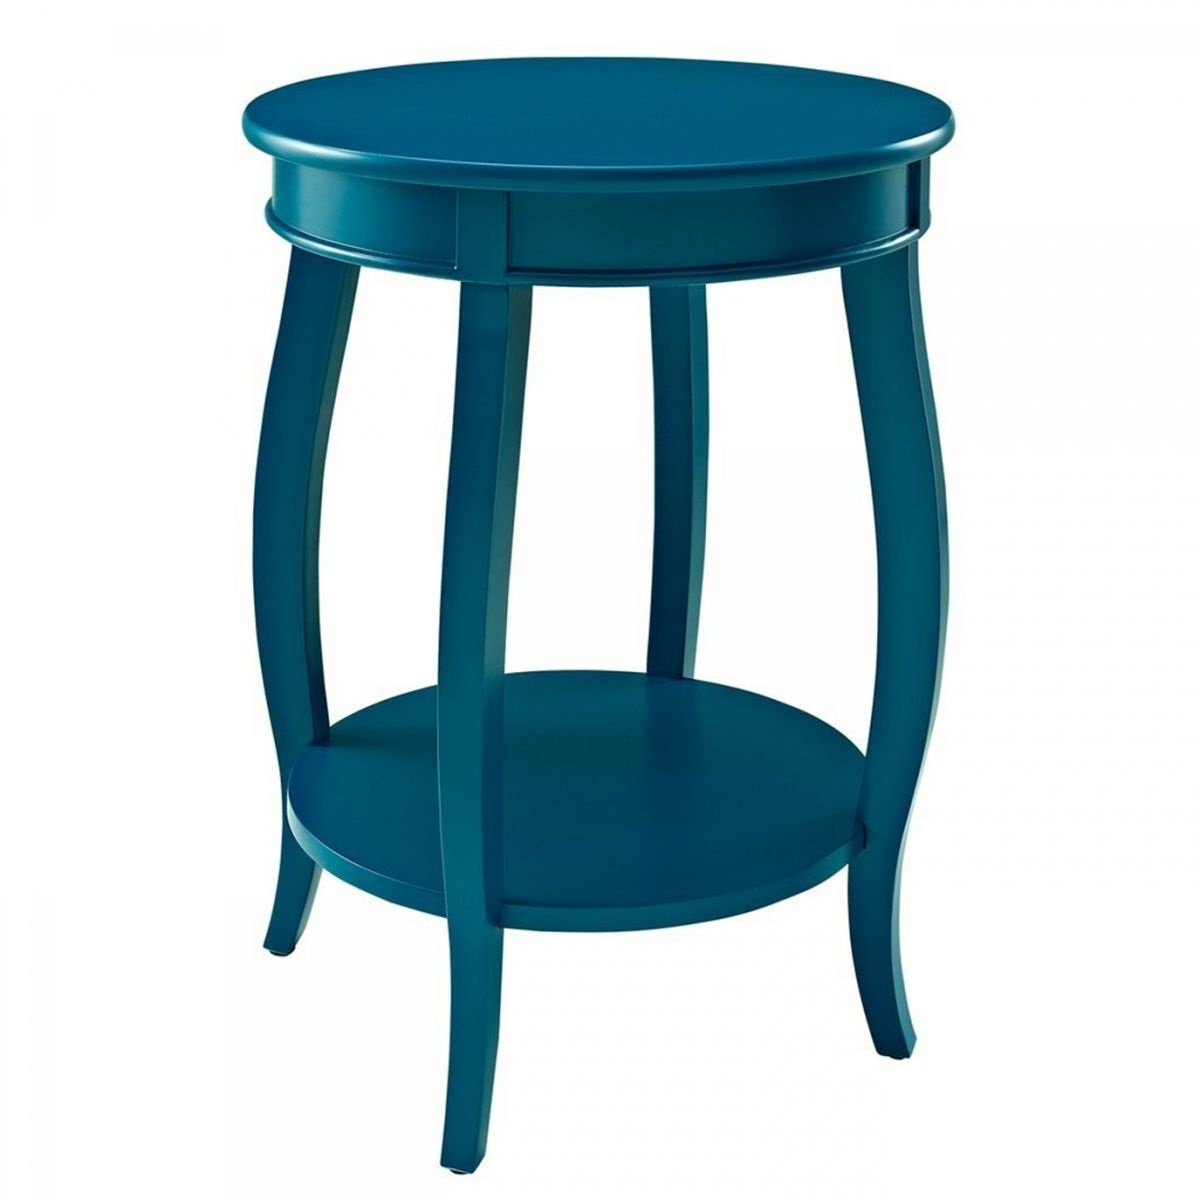 rainbow teal round accent table badcock more ture custom dining tables big square coffee entryway cabinet with doors west elm white desk marble high top drop leaf room small half